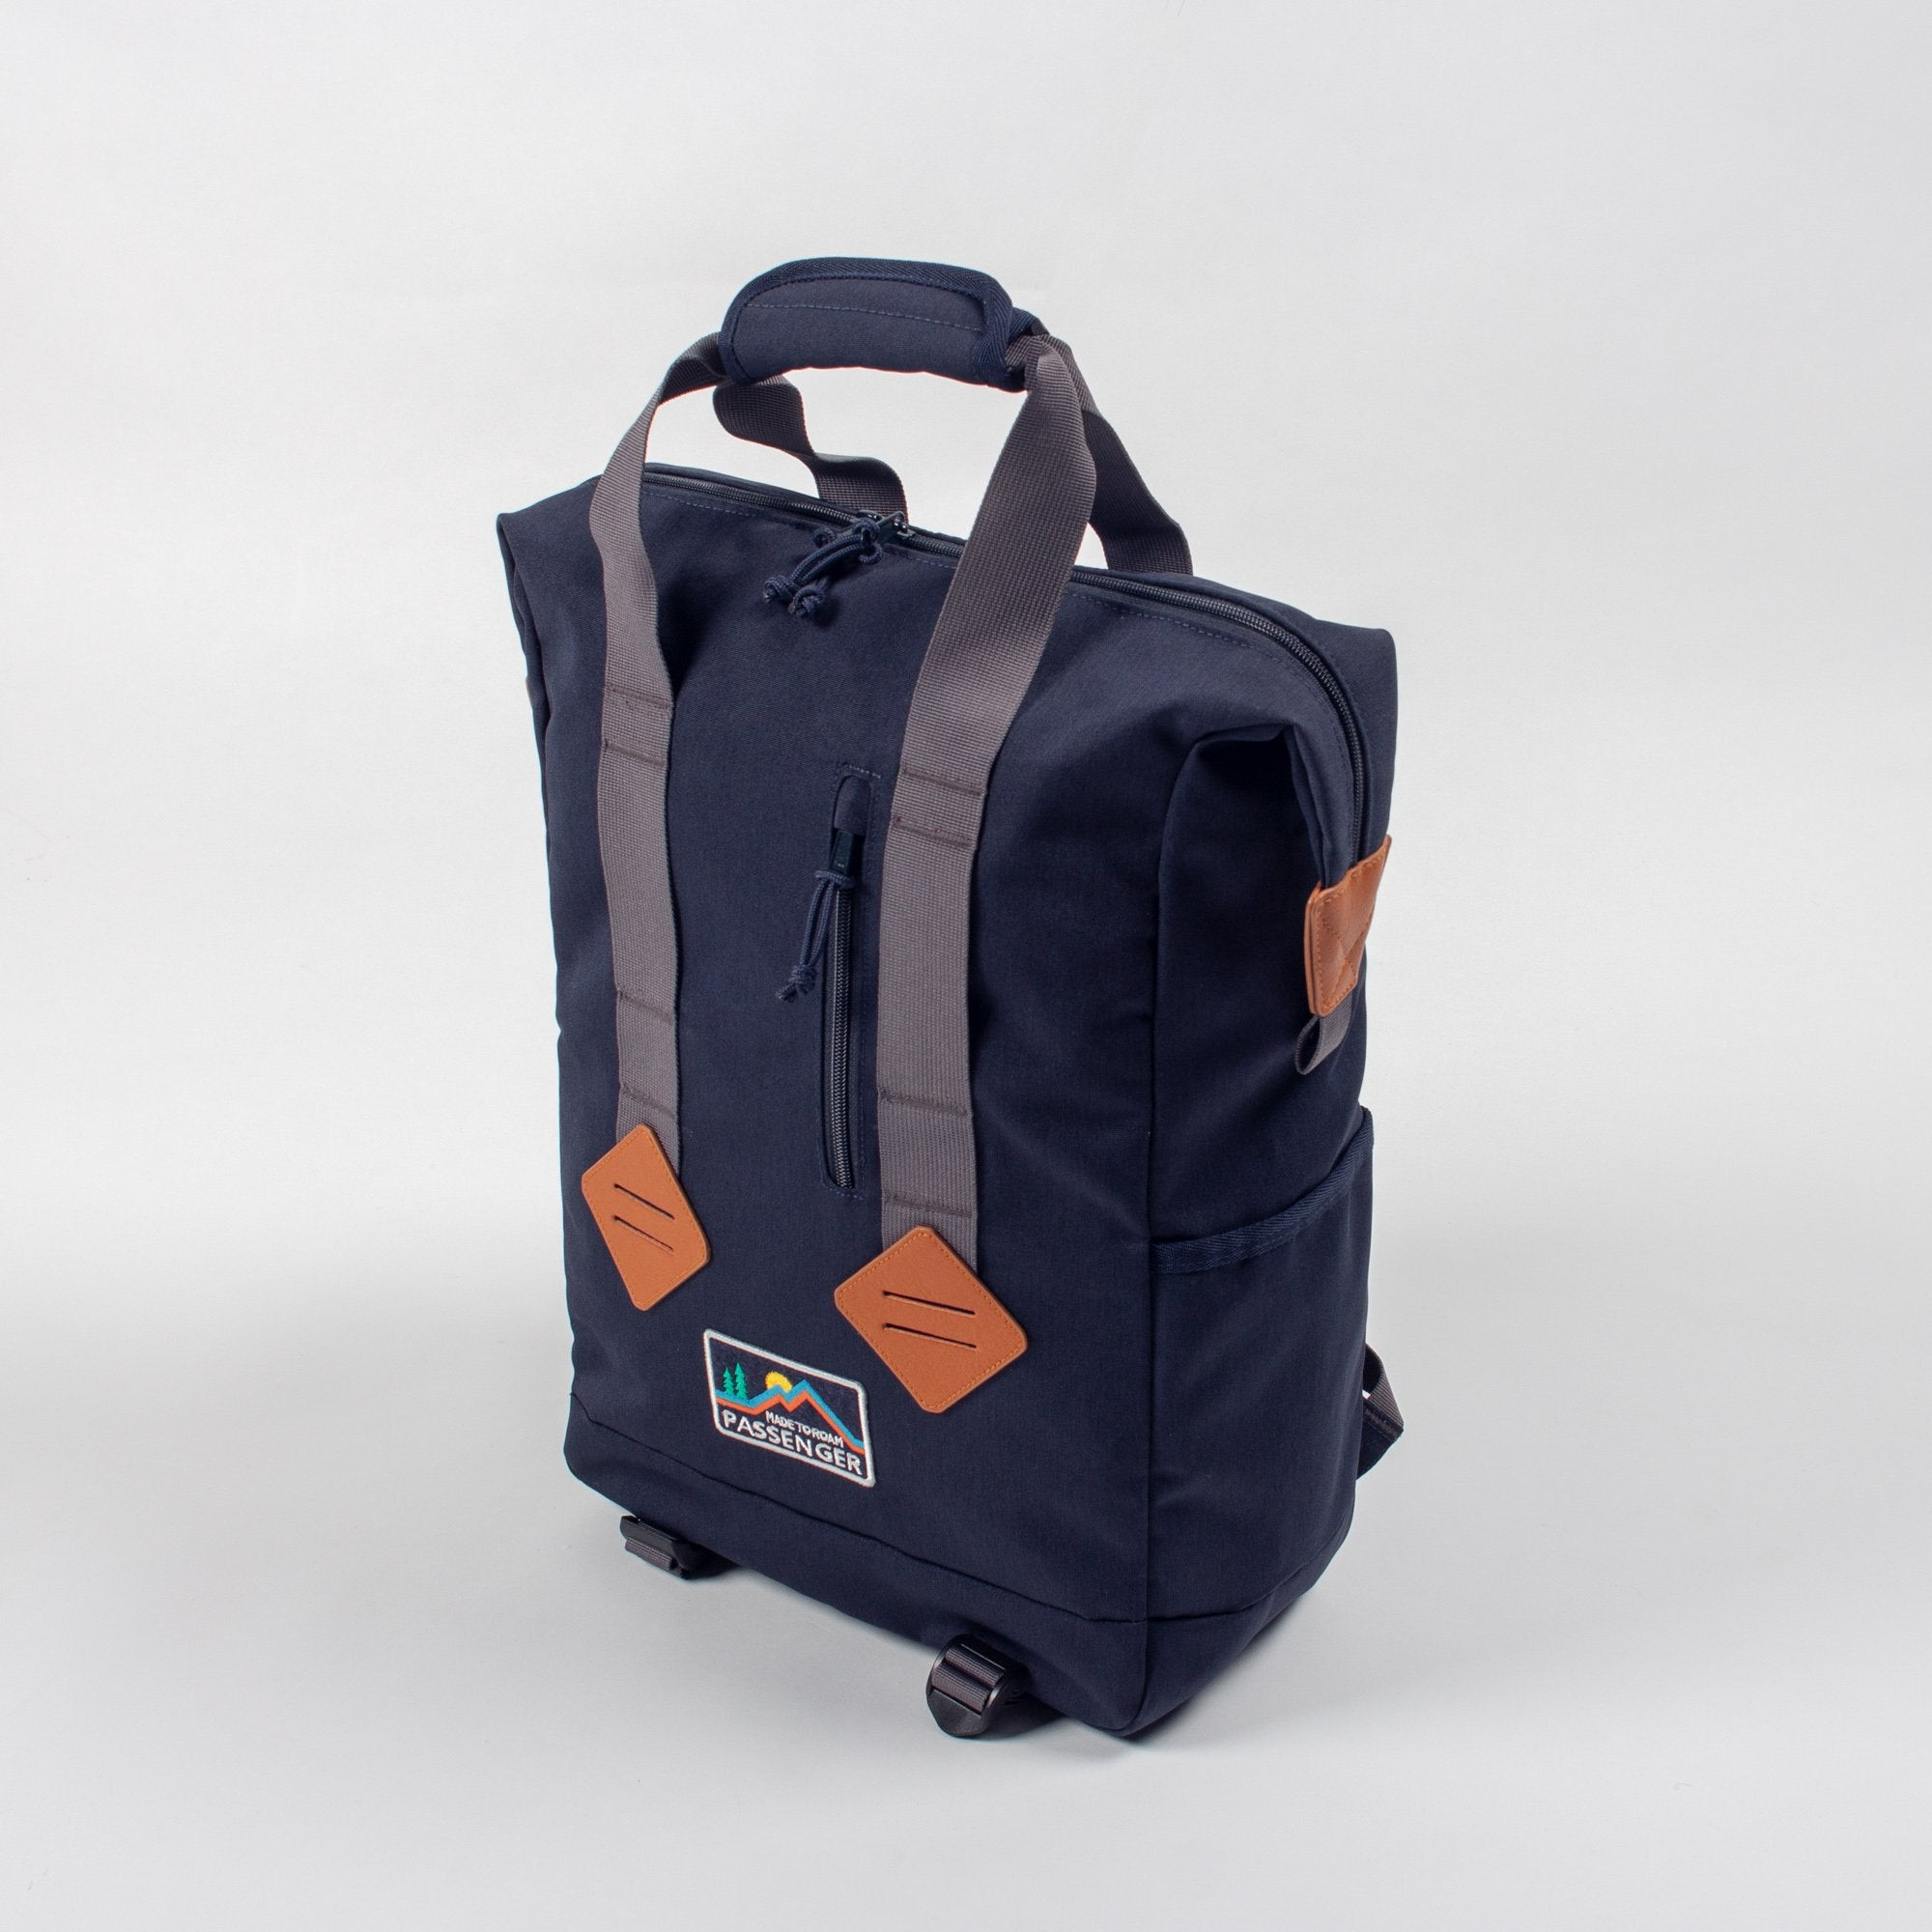 Trip Travel Backpack 30L - Navy Marl image 4